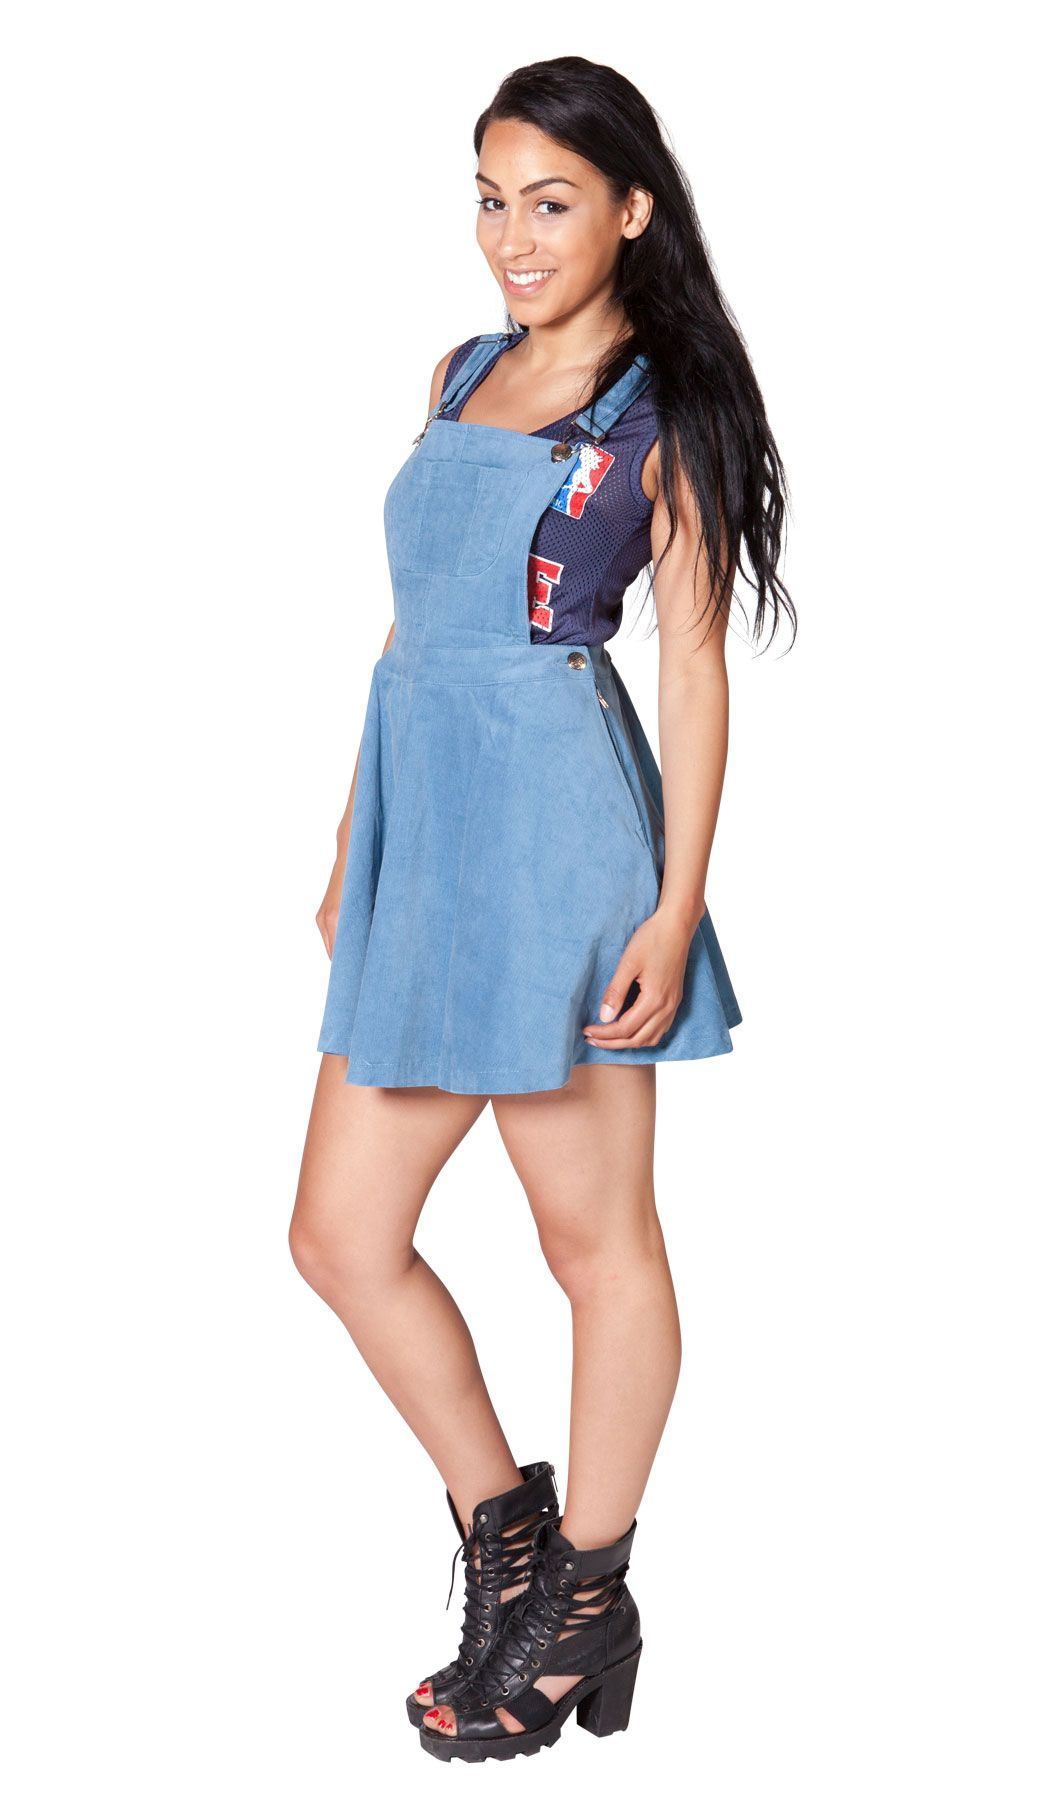 f79078590bc cute bib-overall skater dress in pale blue fine corduroy from  BibOverallsOnline - available US size 6 - 12 and retail at  46.99   dungareedress   ...